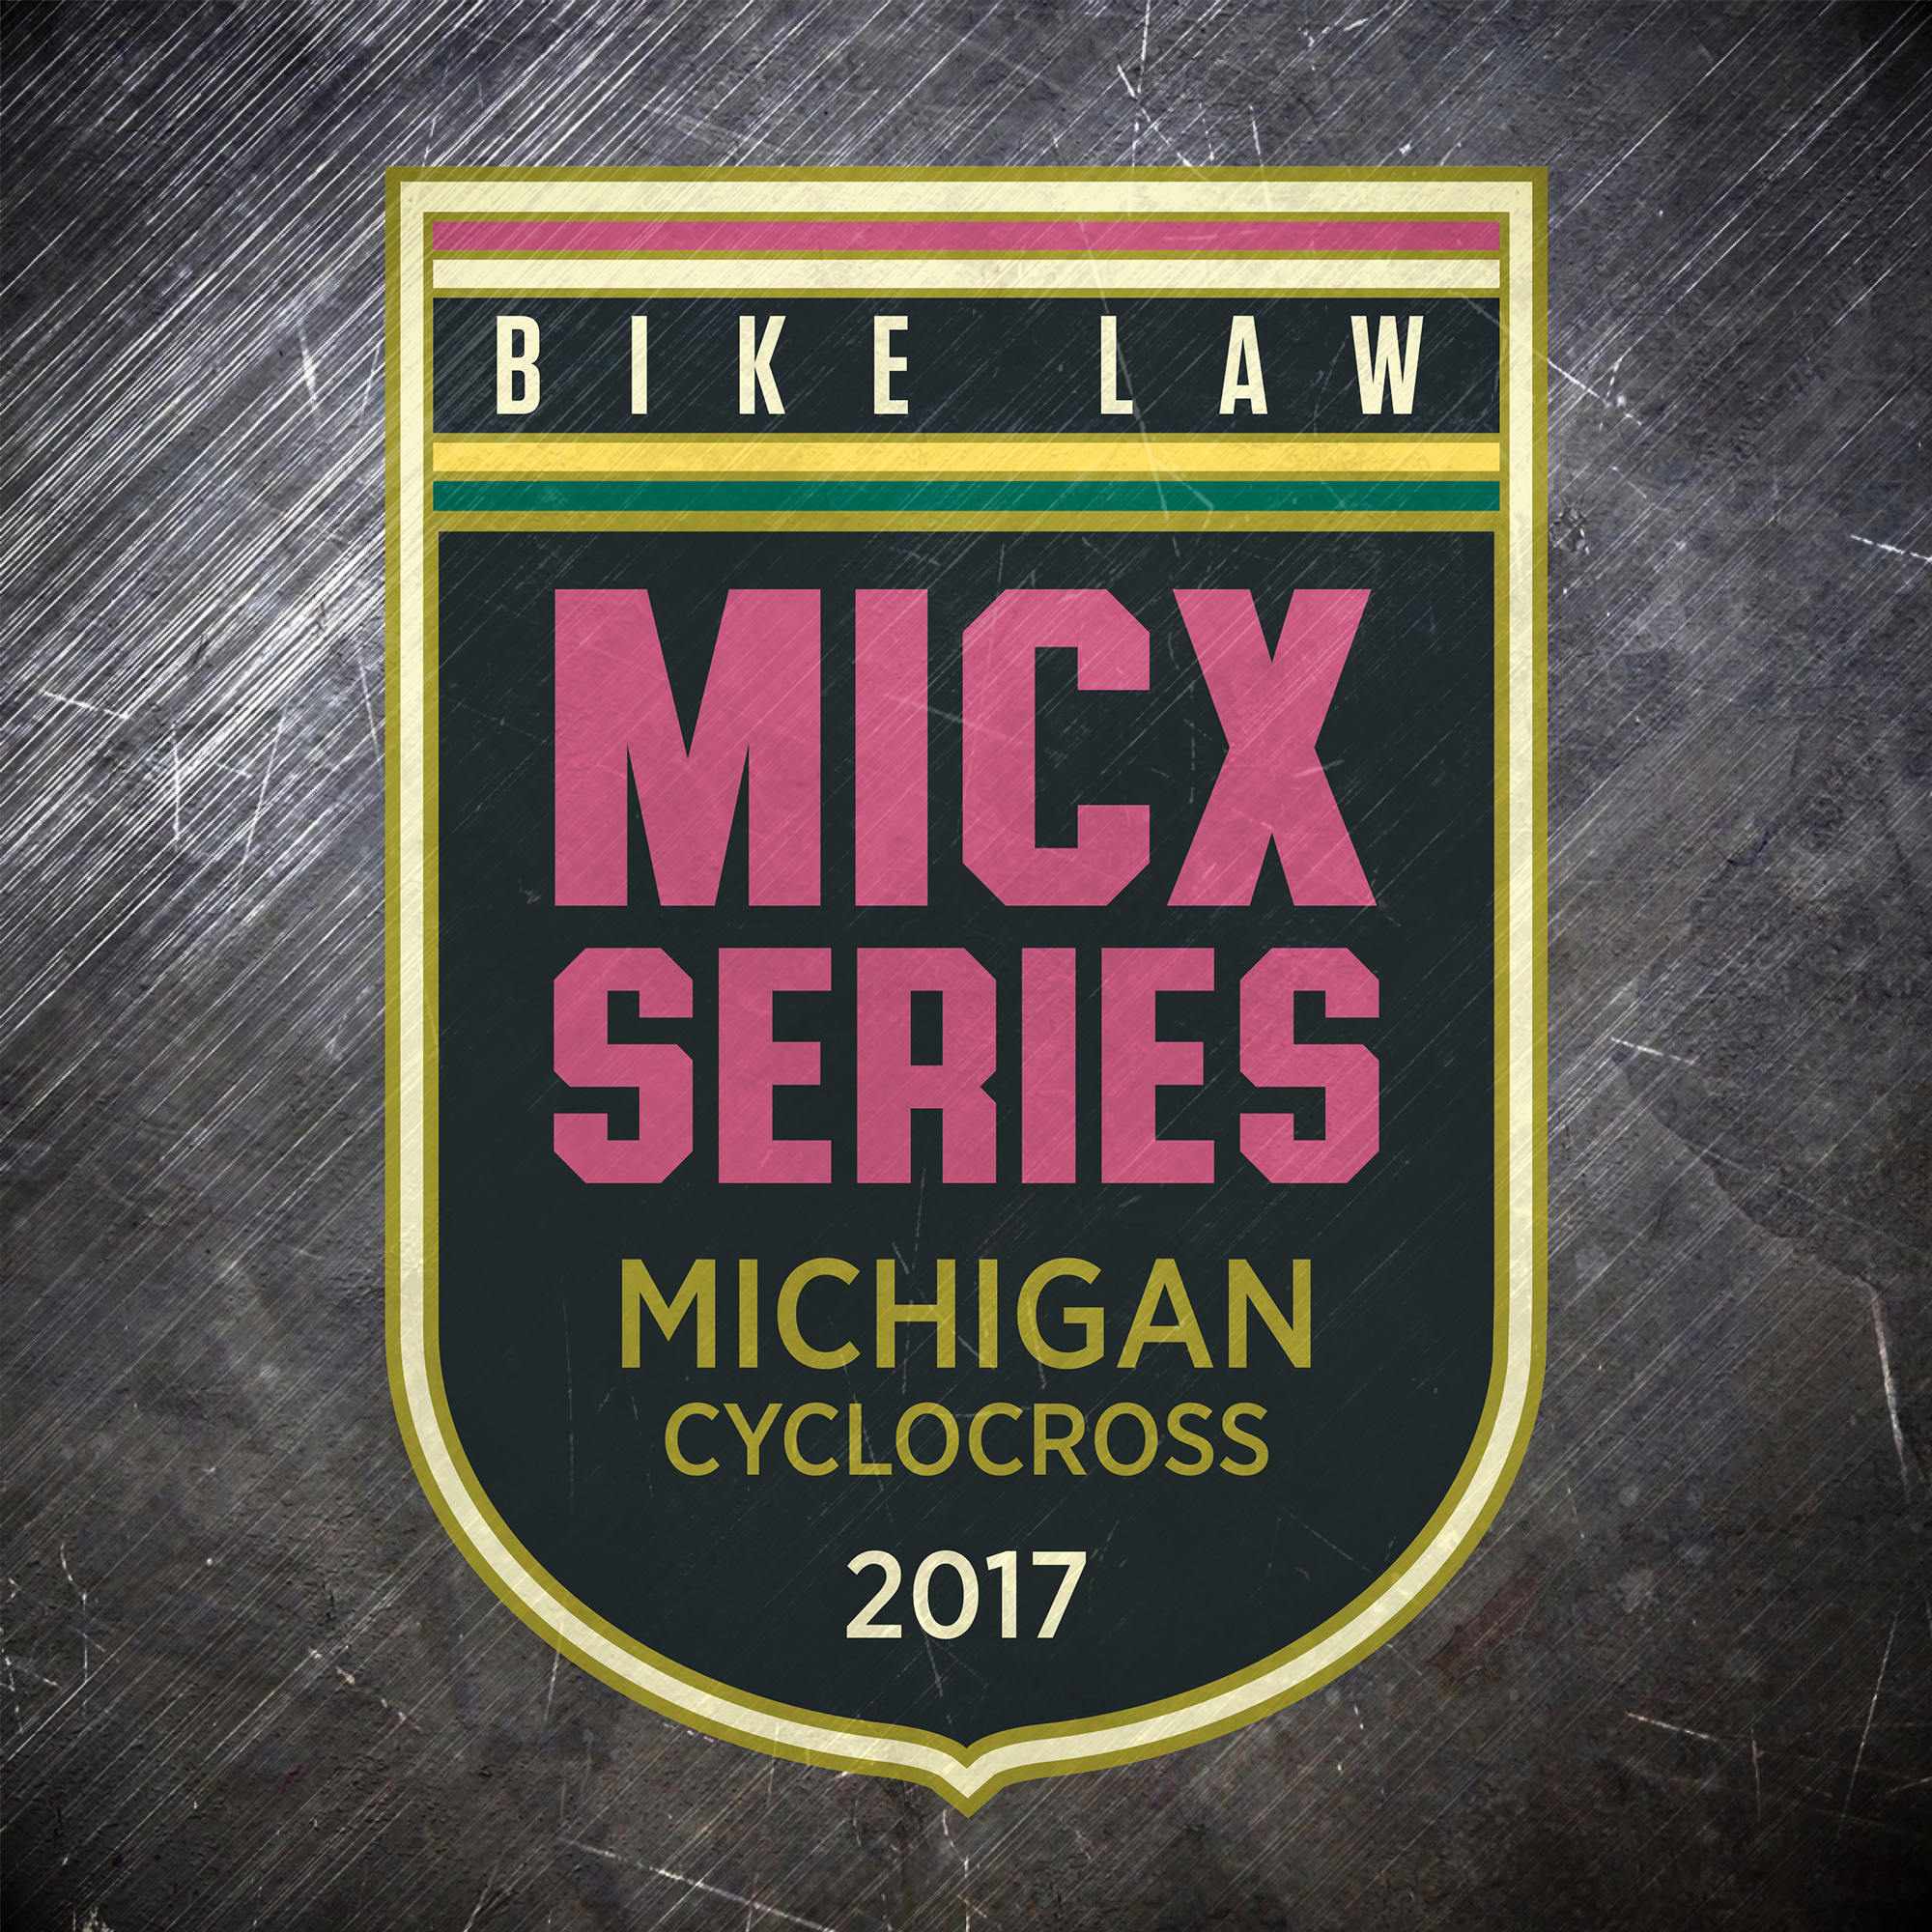 Bike Law 2017 Michigan Cyclocross Series Logo